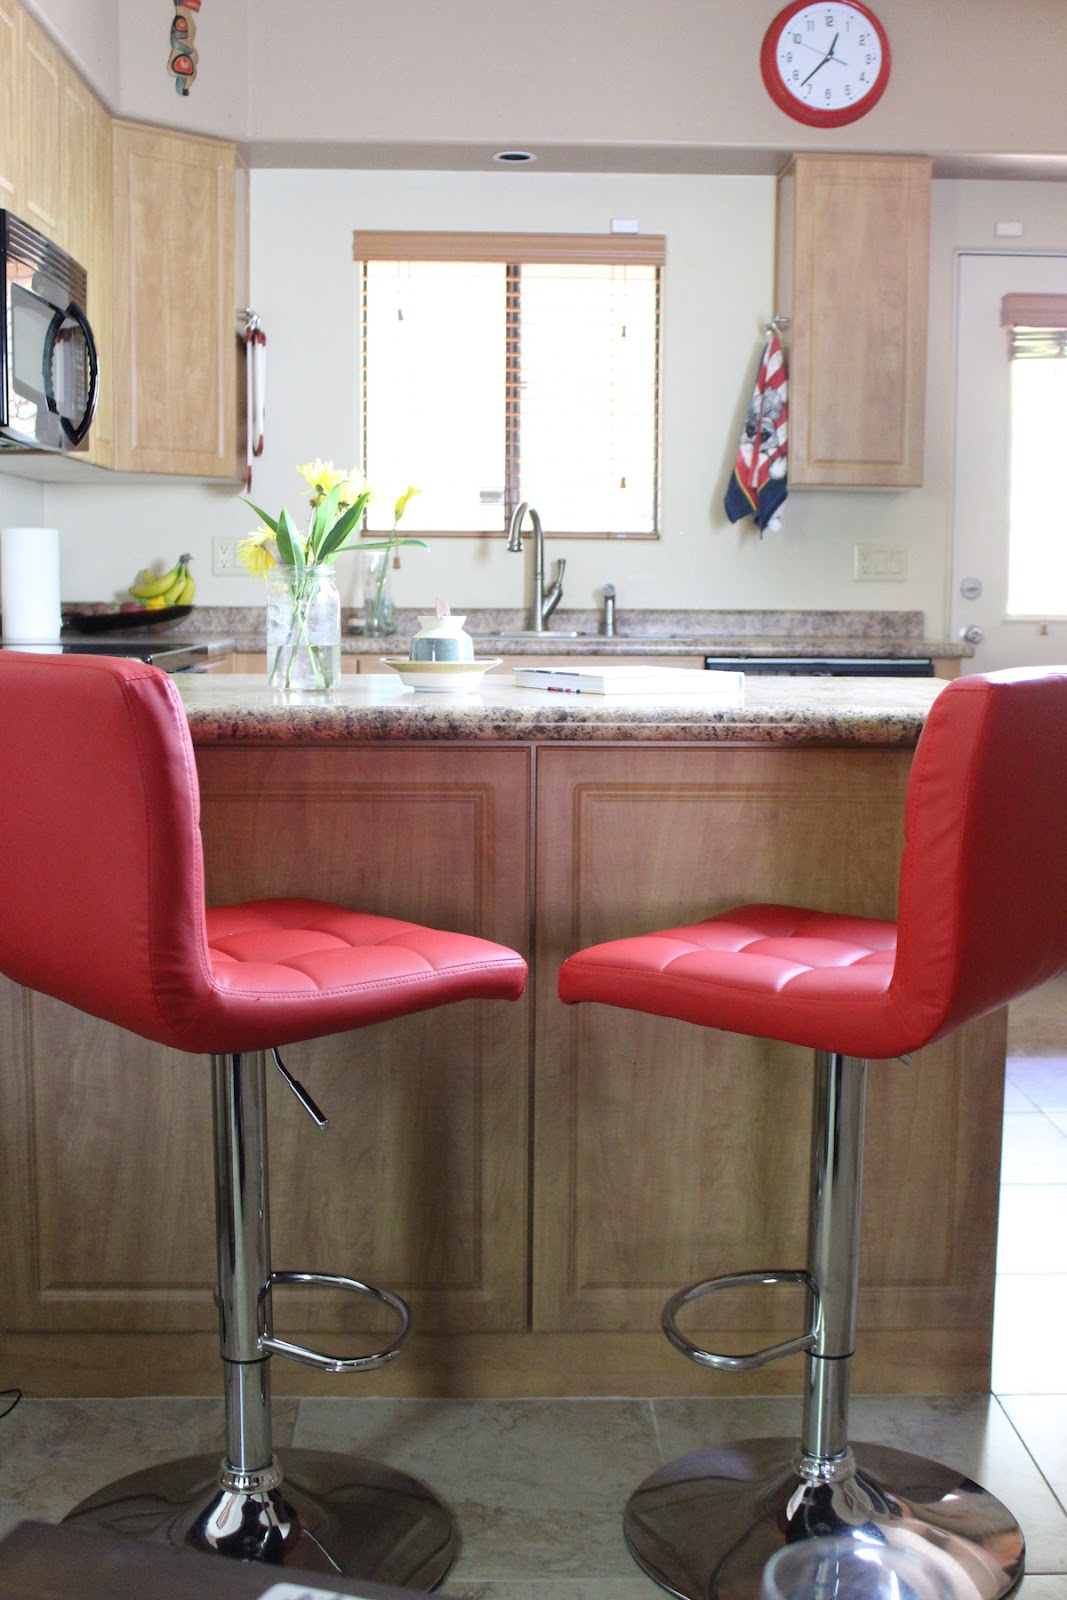 A bright view of the kitchen, featuring two red kitchen chairs and a unique butter crock and a coffee book.